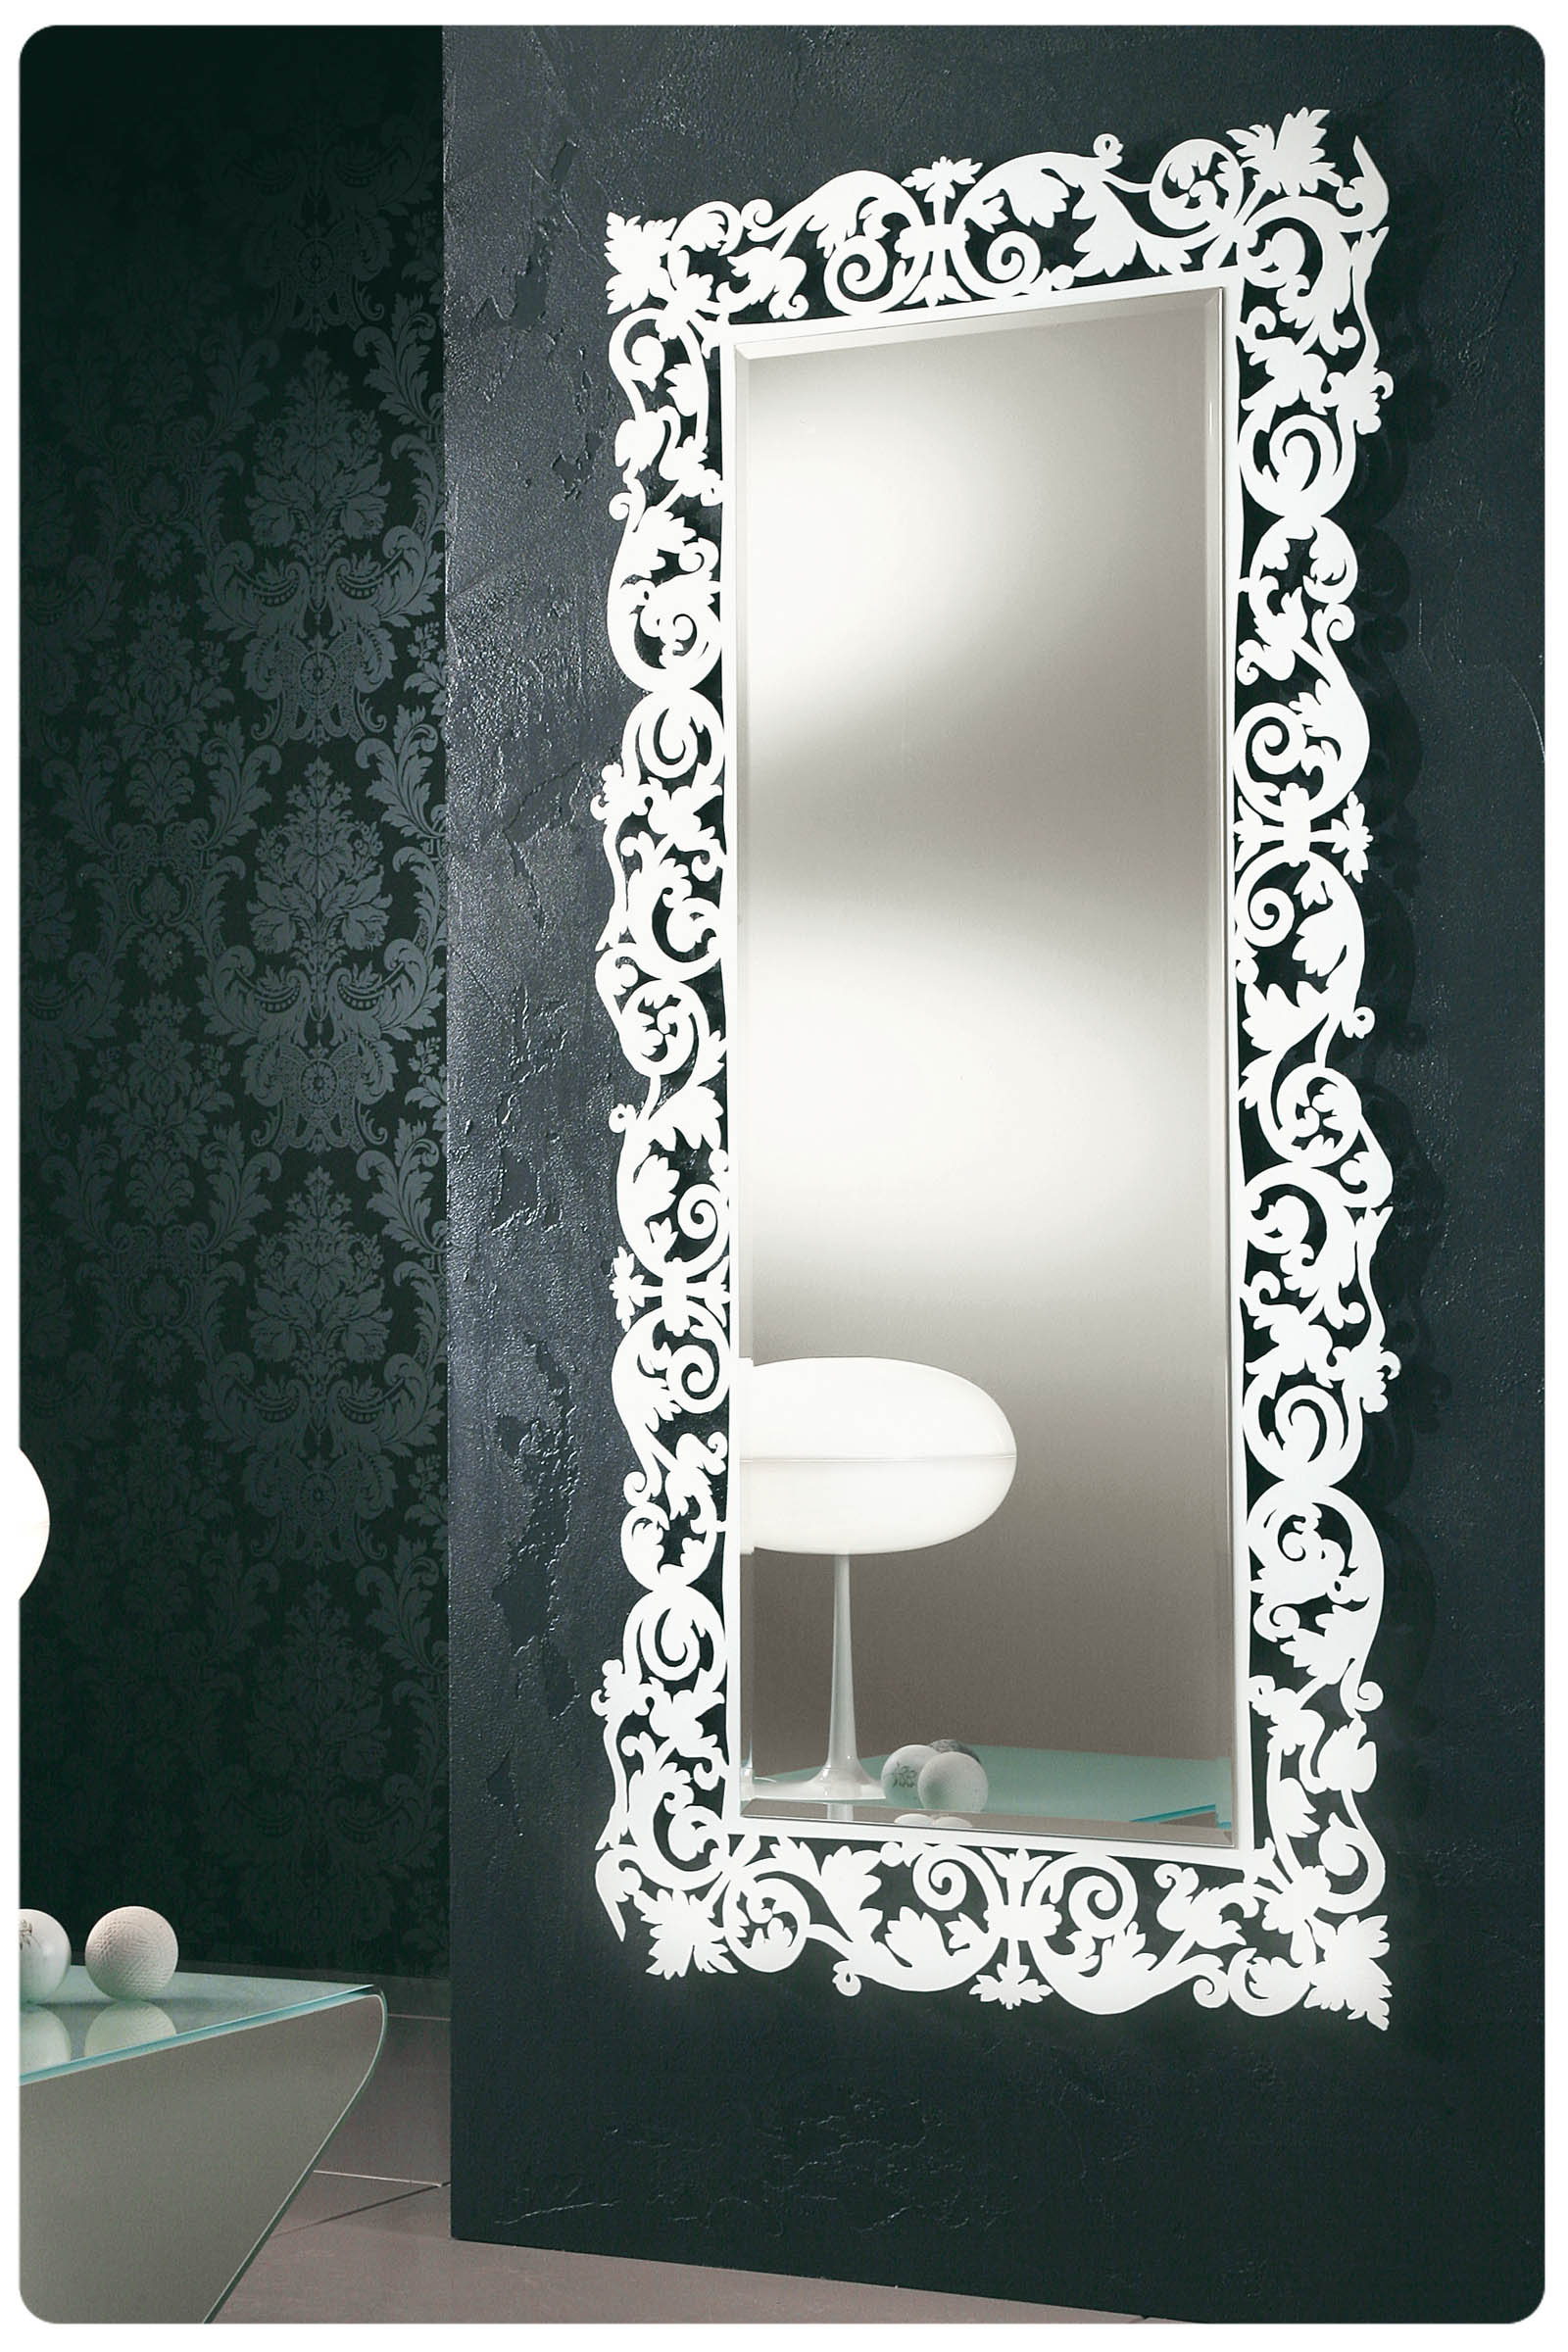 http://www.lops.it/images/products/complementi/specchiera-moderna-riflessi-romantico-00.jpg